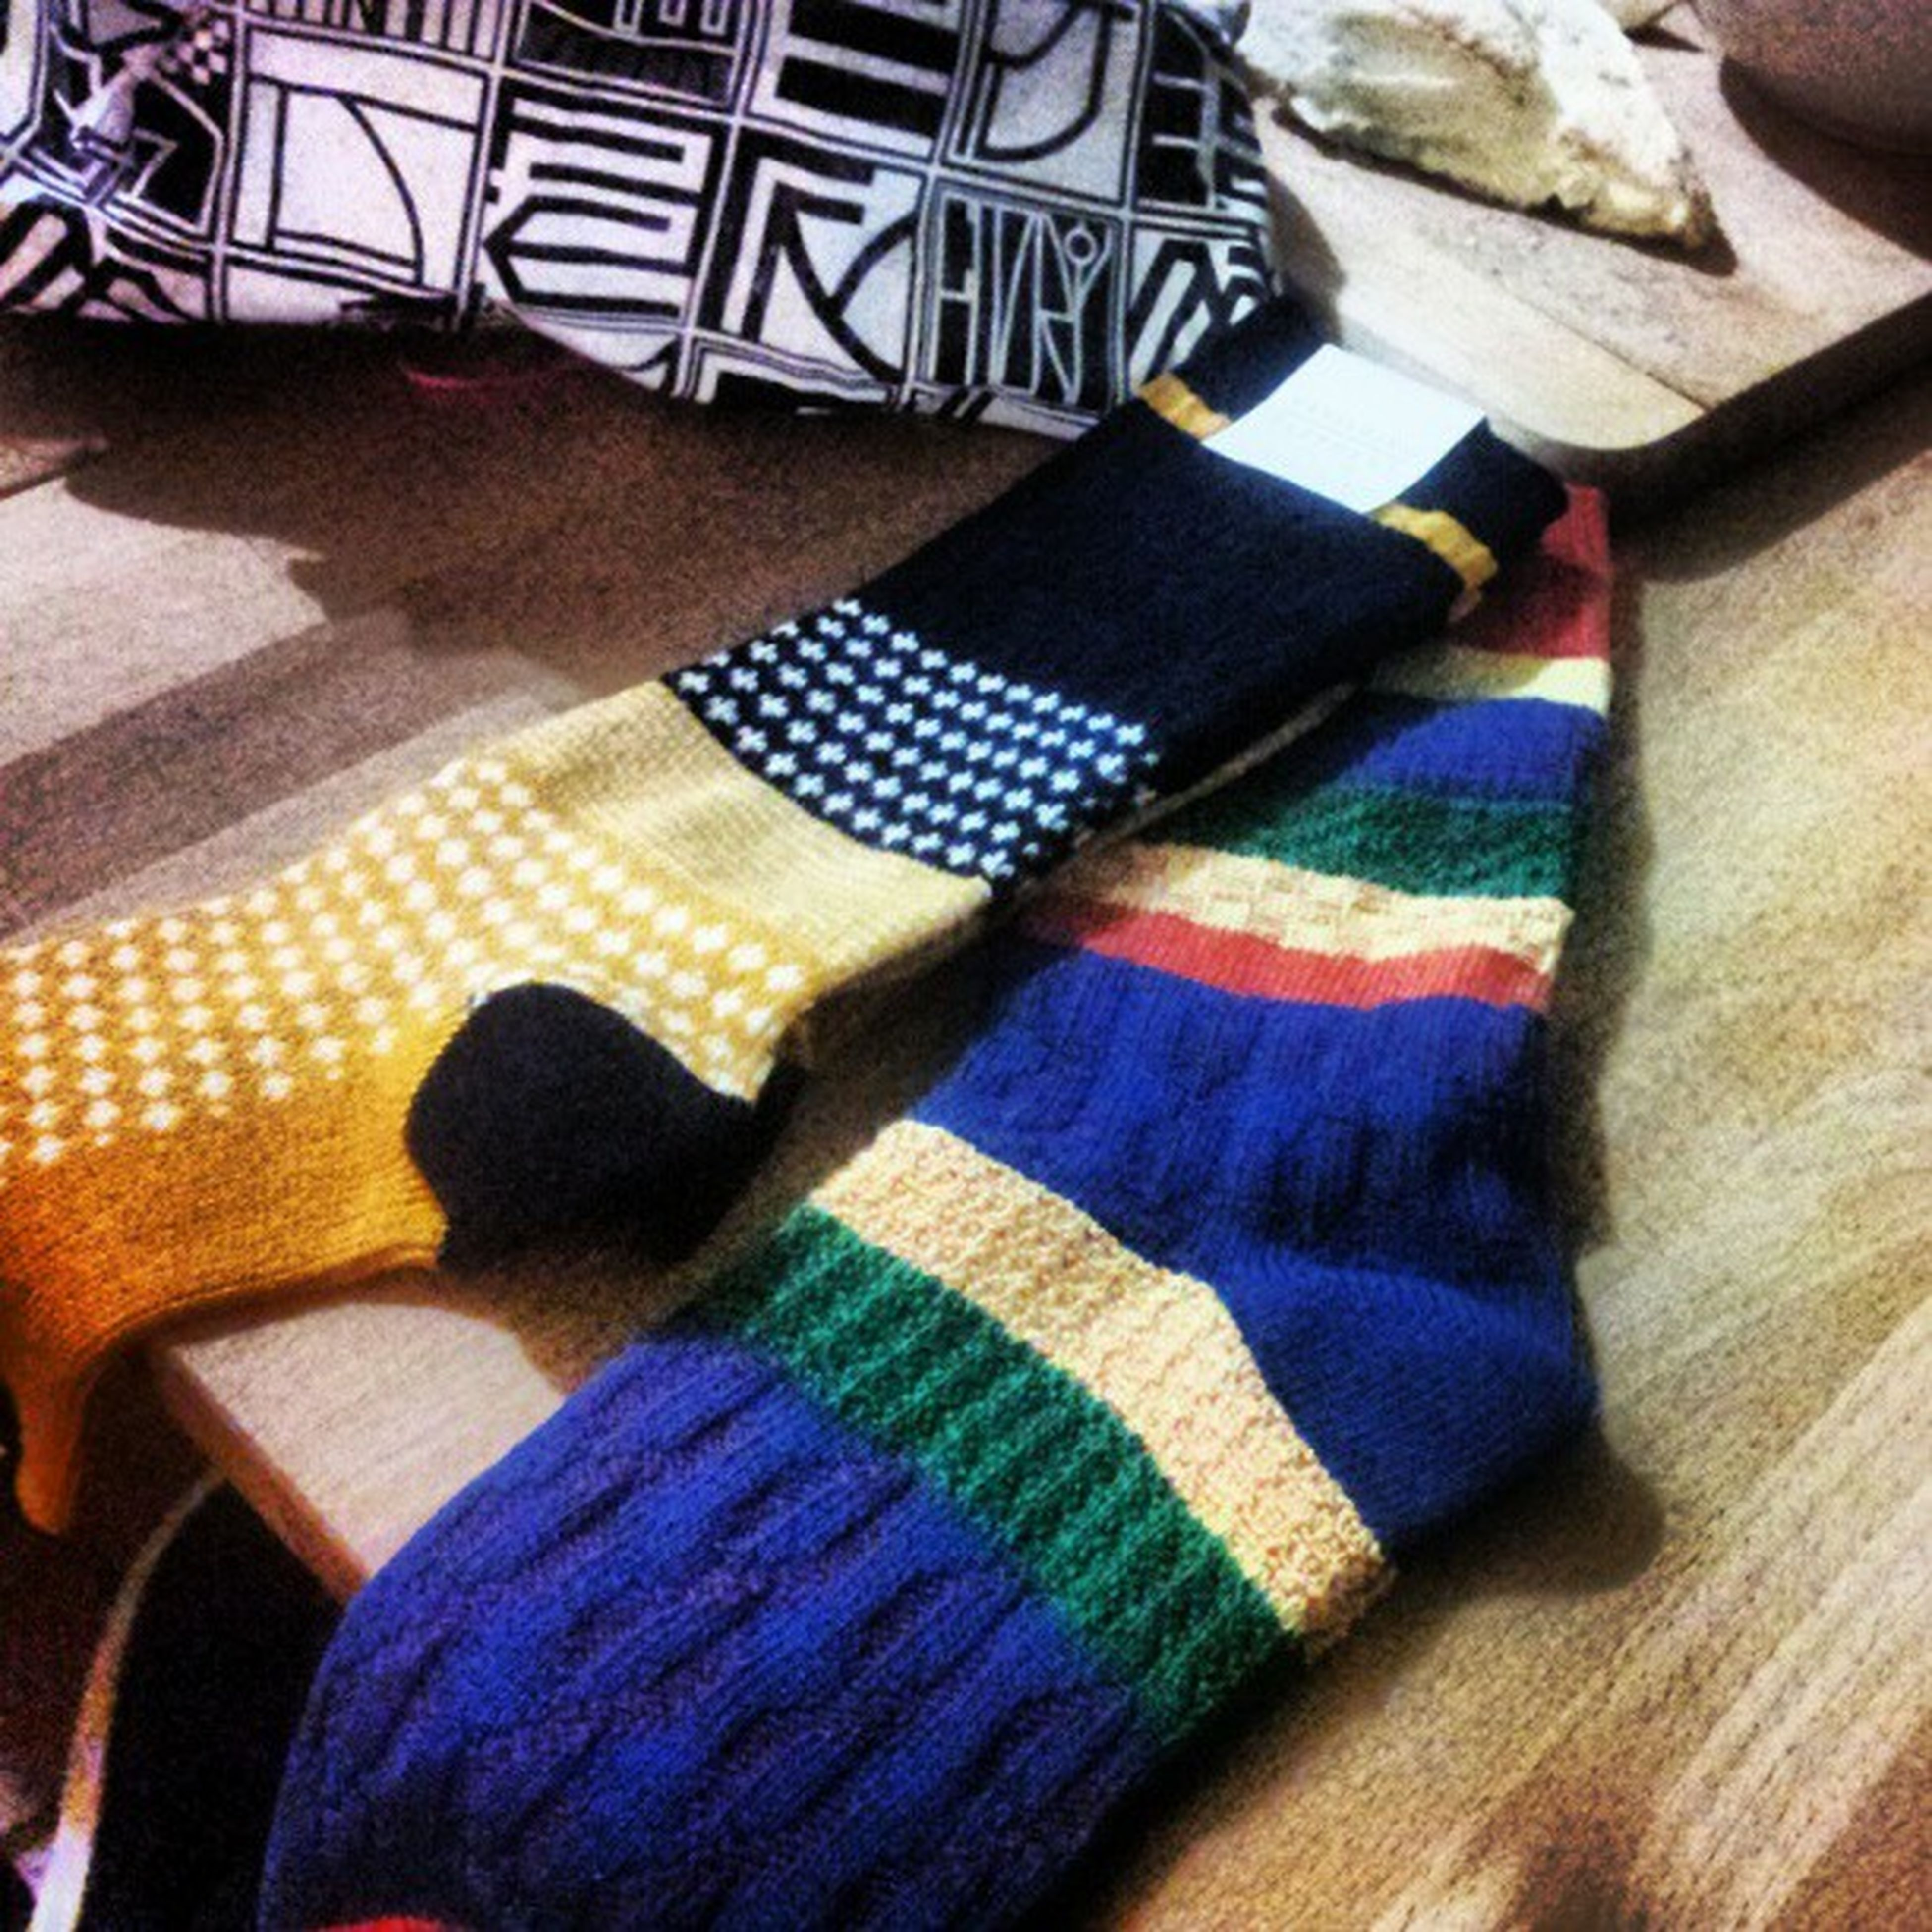 indoors, textile, high angle view, multi colored, fabric, person, low section, relaxation, wood - material, blue, shoe, jeans, clothing, pattern, close-up, still life, one person, flooring, home interior, sock